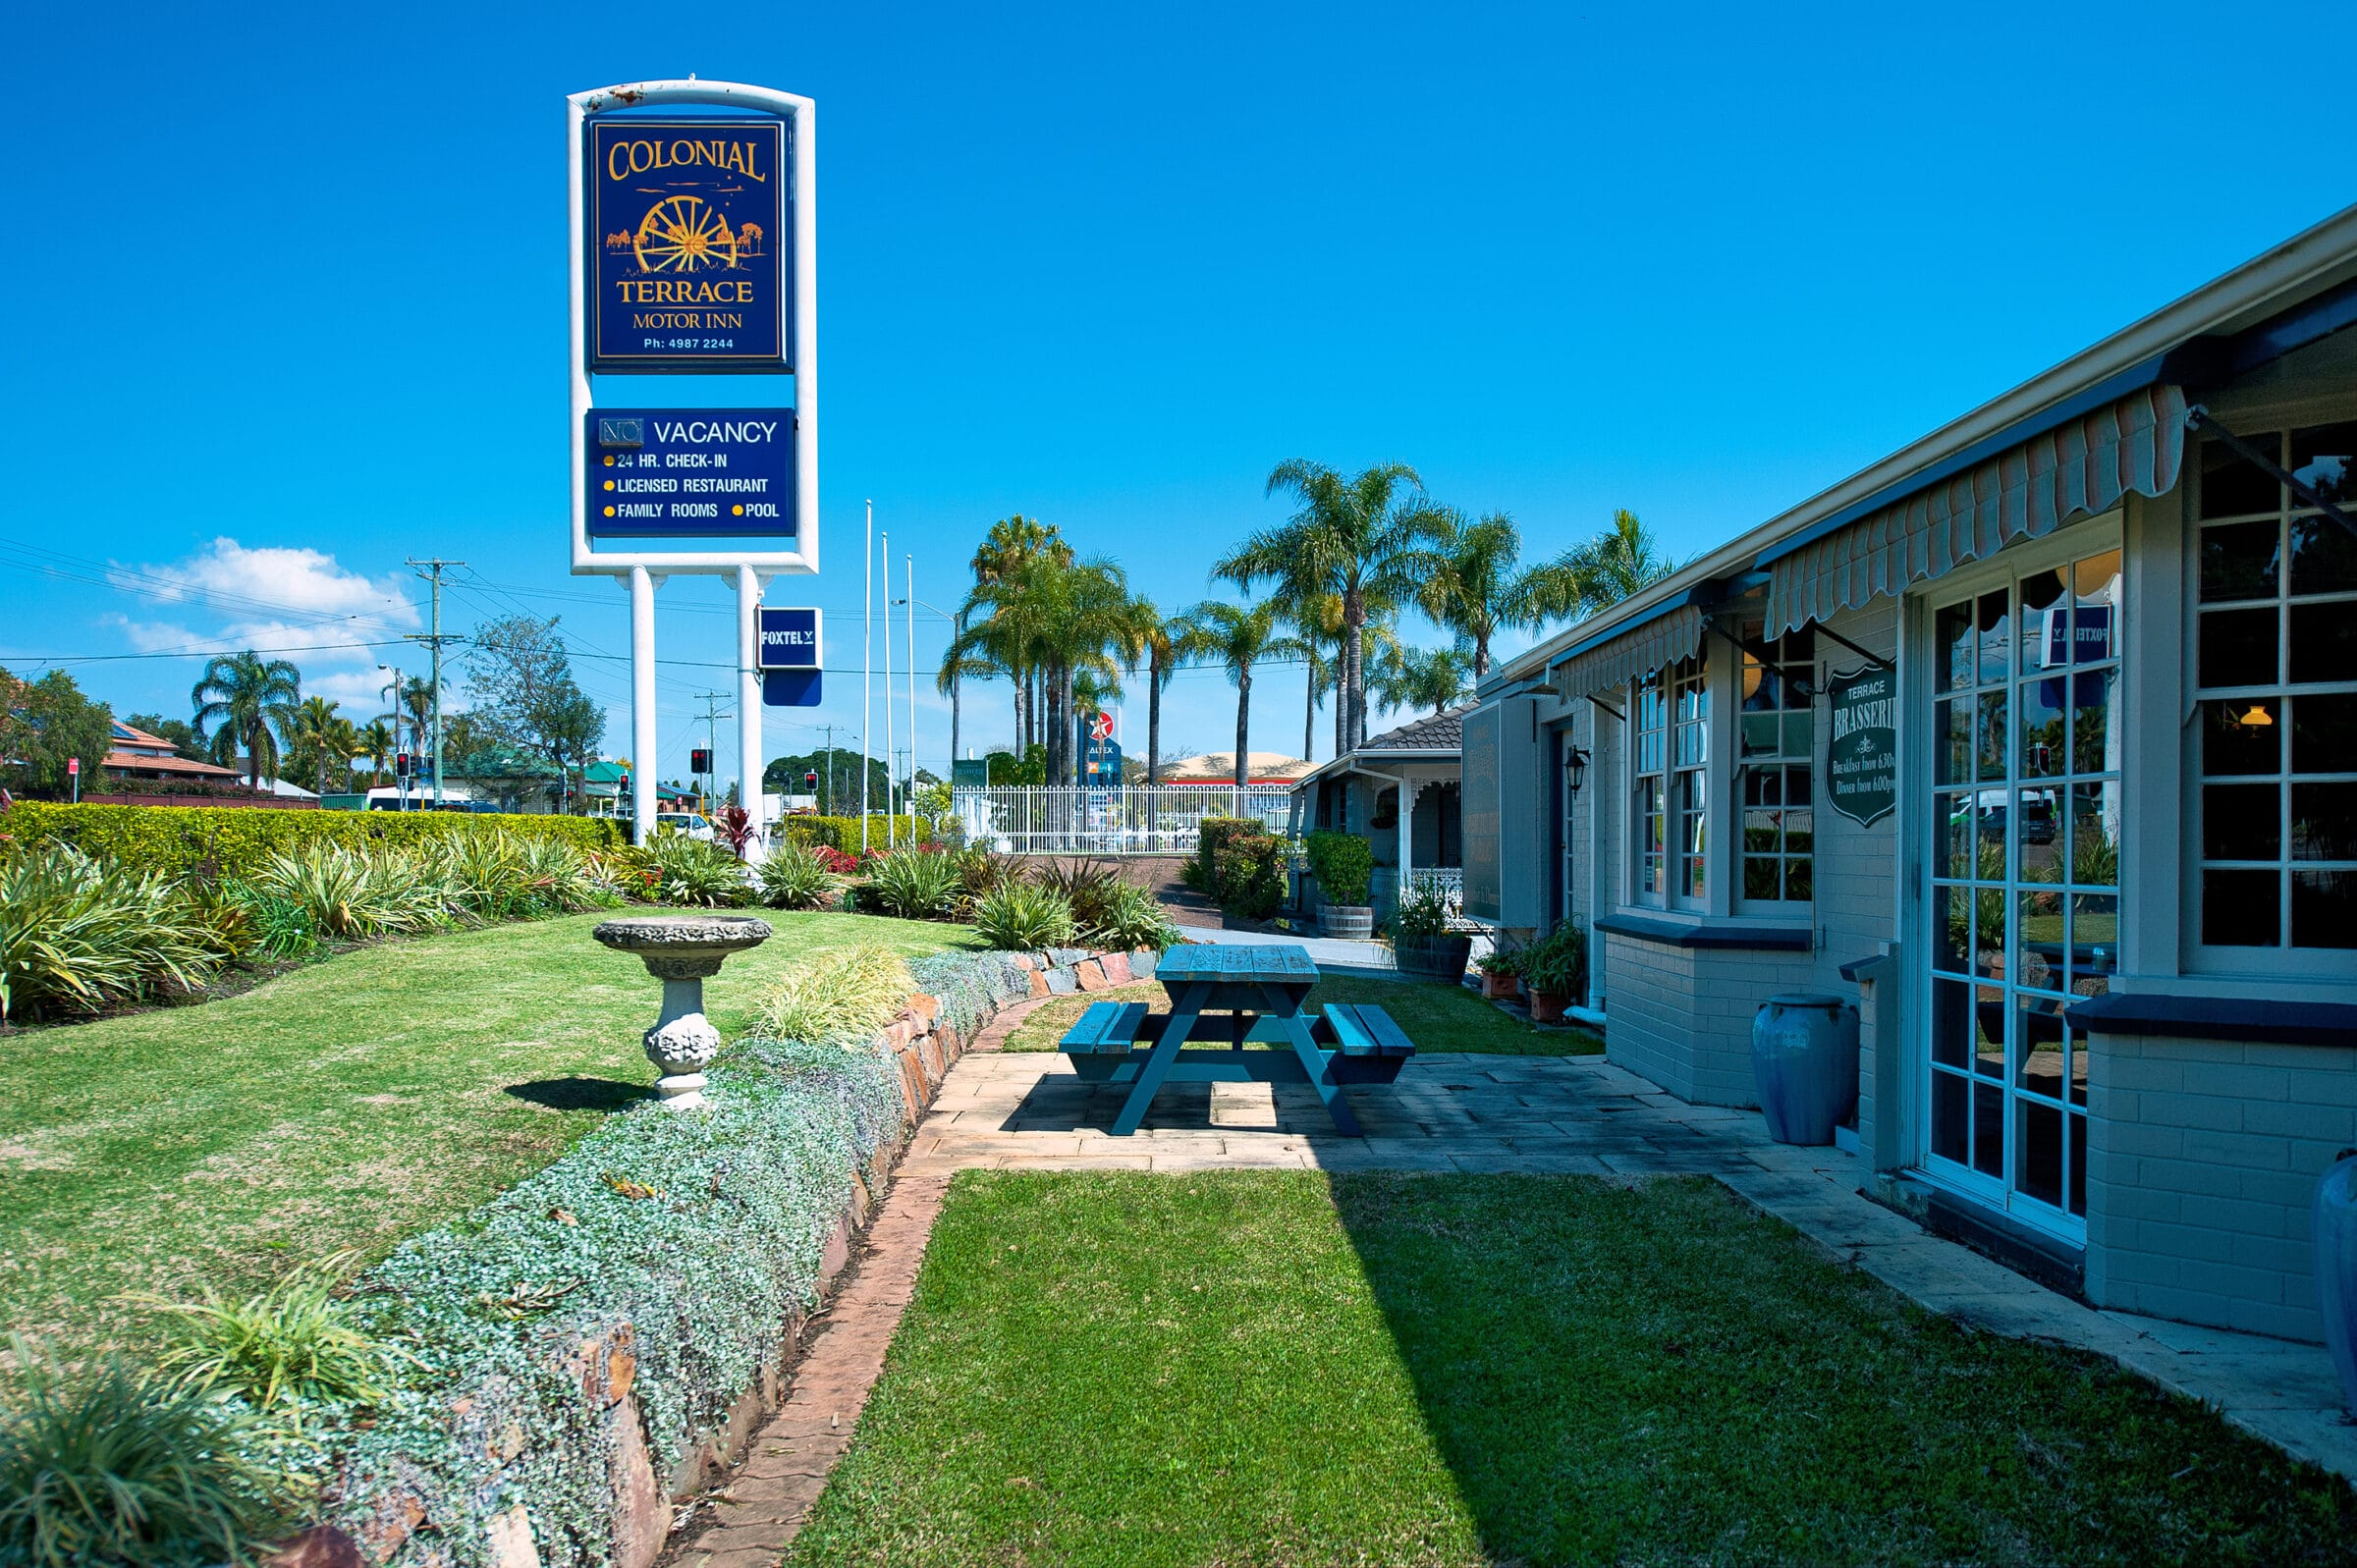 About the Colonial Terrace Motor Inn